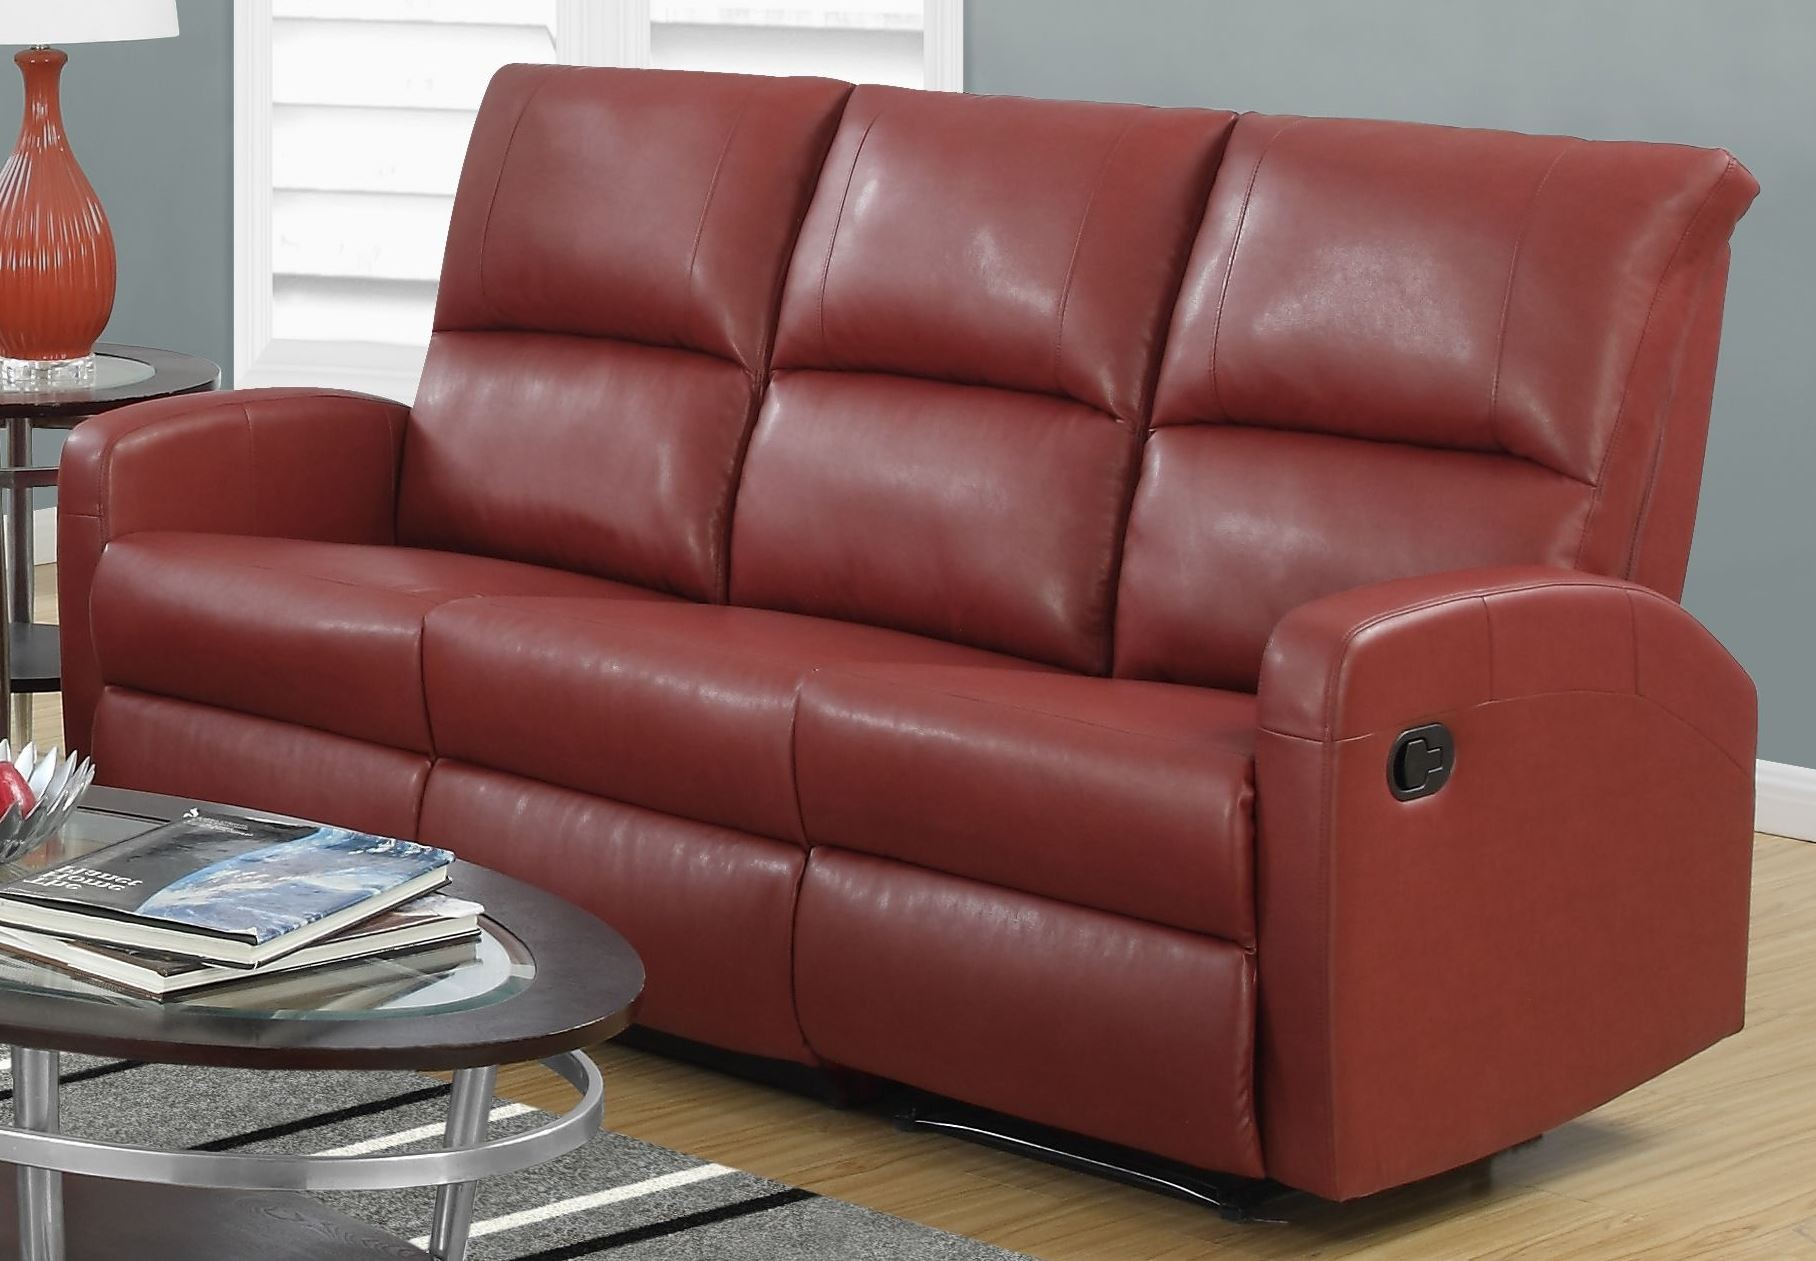 Red Bonded Leather Reclining Sofa From Monarch Coleman Furniture